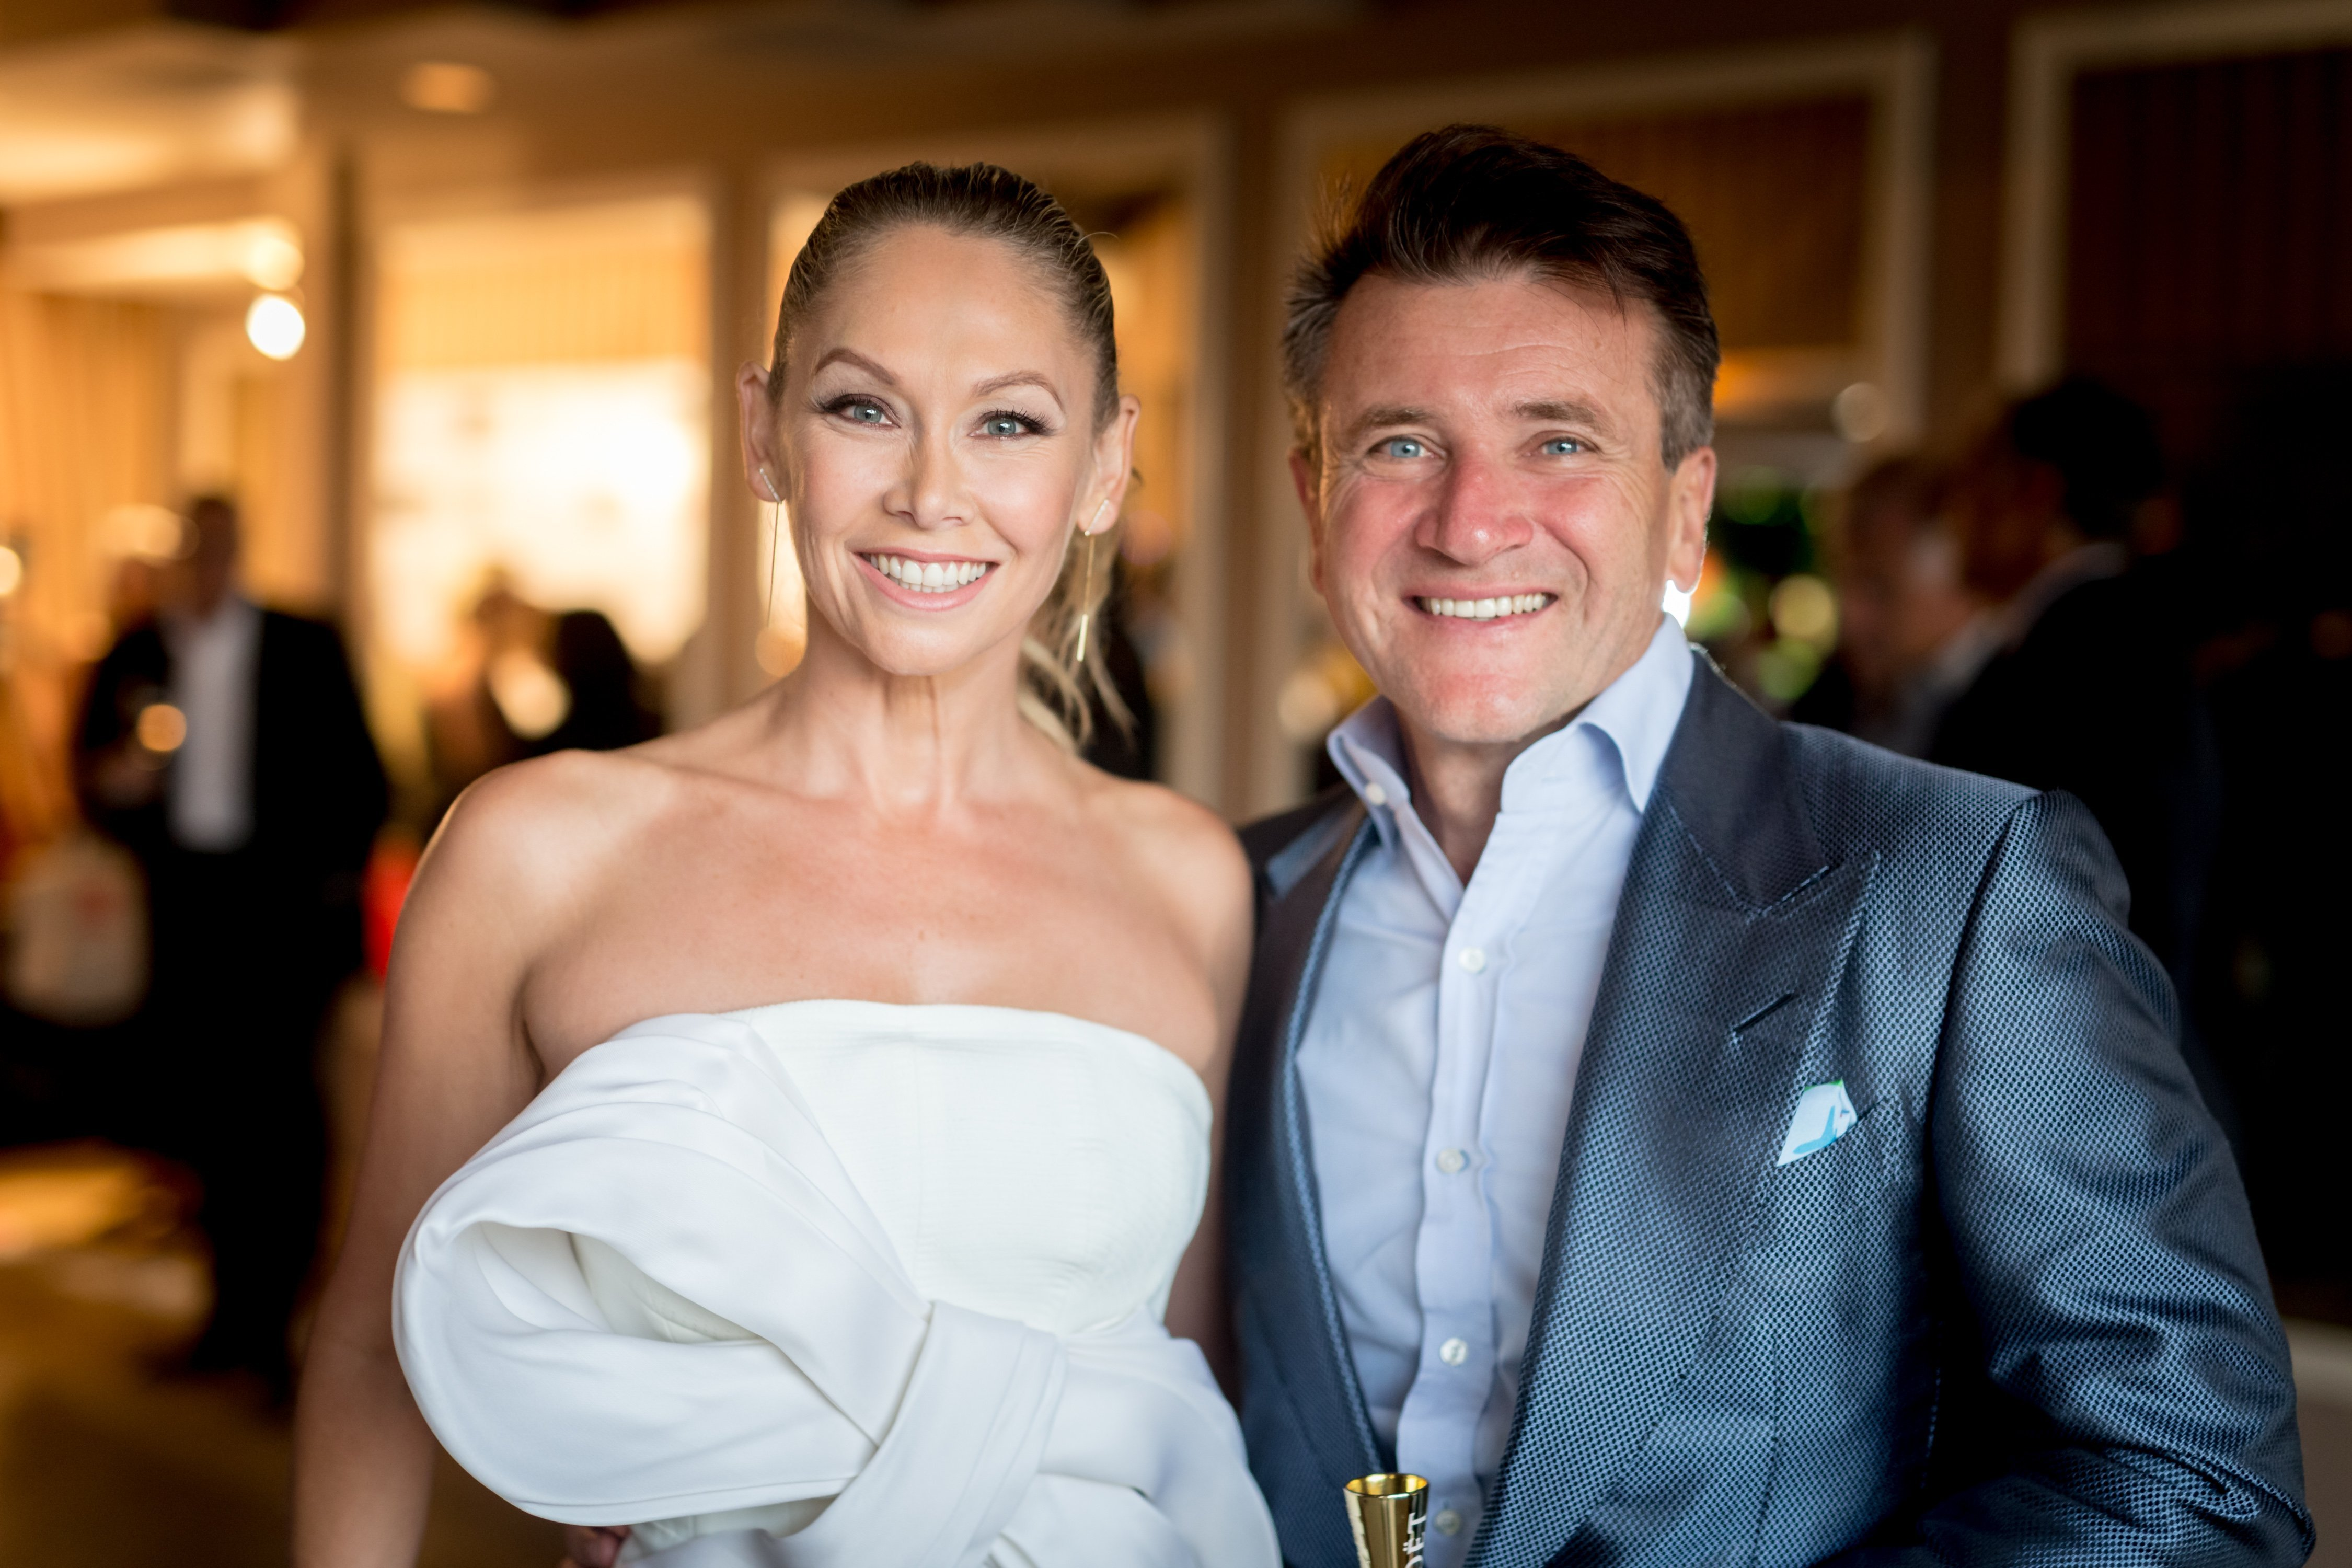 Kym Herjavec and Robert Herjavec attend the Television Industry Advocacy Awards in West Hollywood, California on September 16, 2016 | Photo: Getty Images